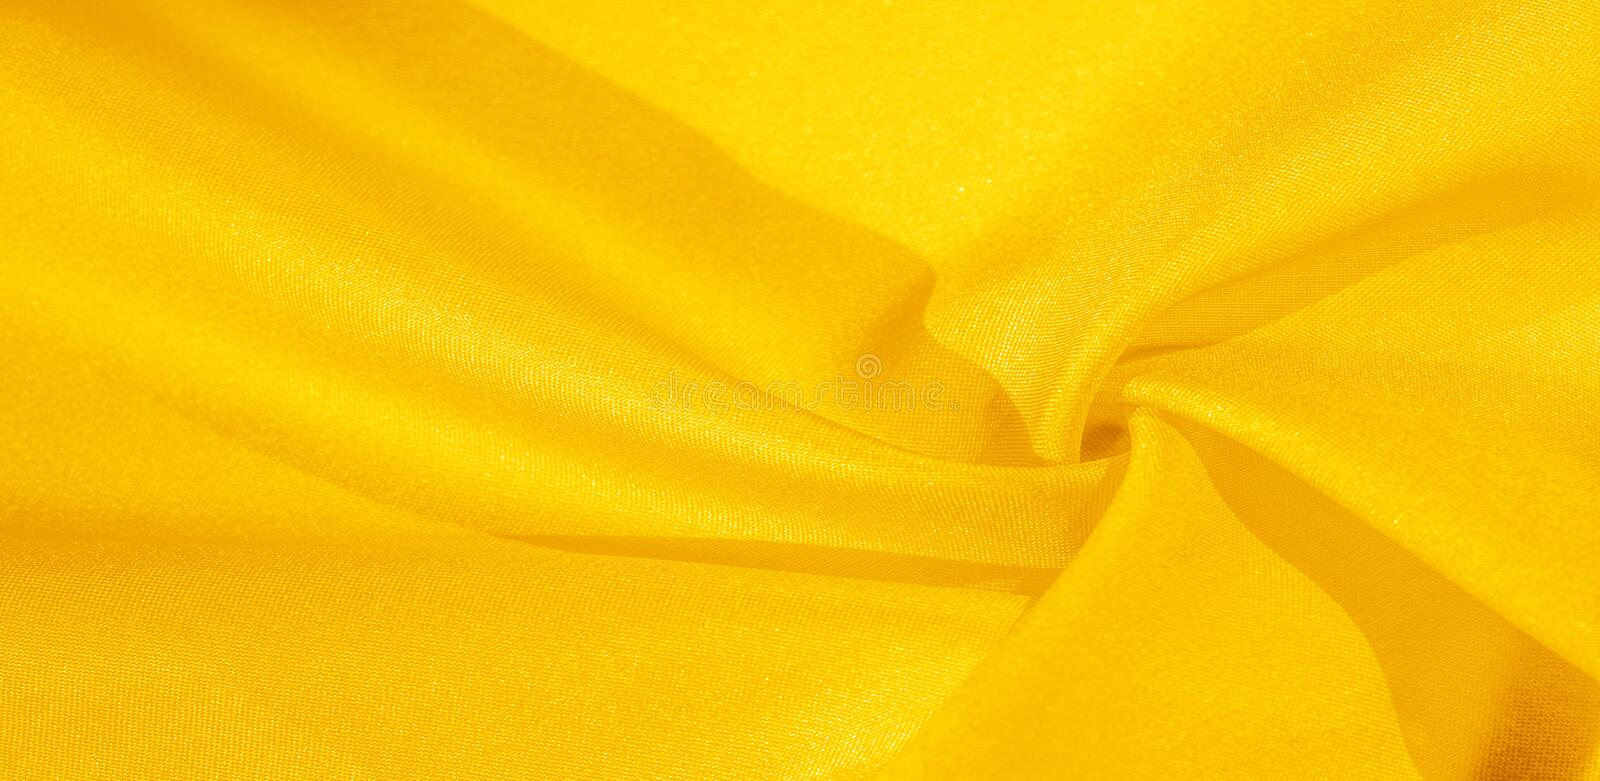 Texture, background, pattern, silk fabric in yellow. This silk is incredibly exquisite. Projects made from this will last a long. Time and will still be in royalty free stock photos